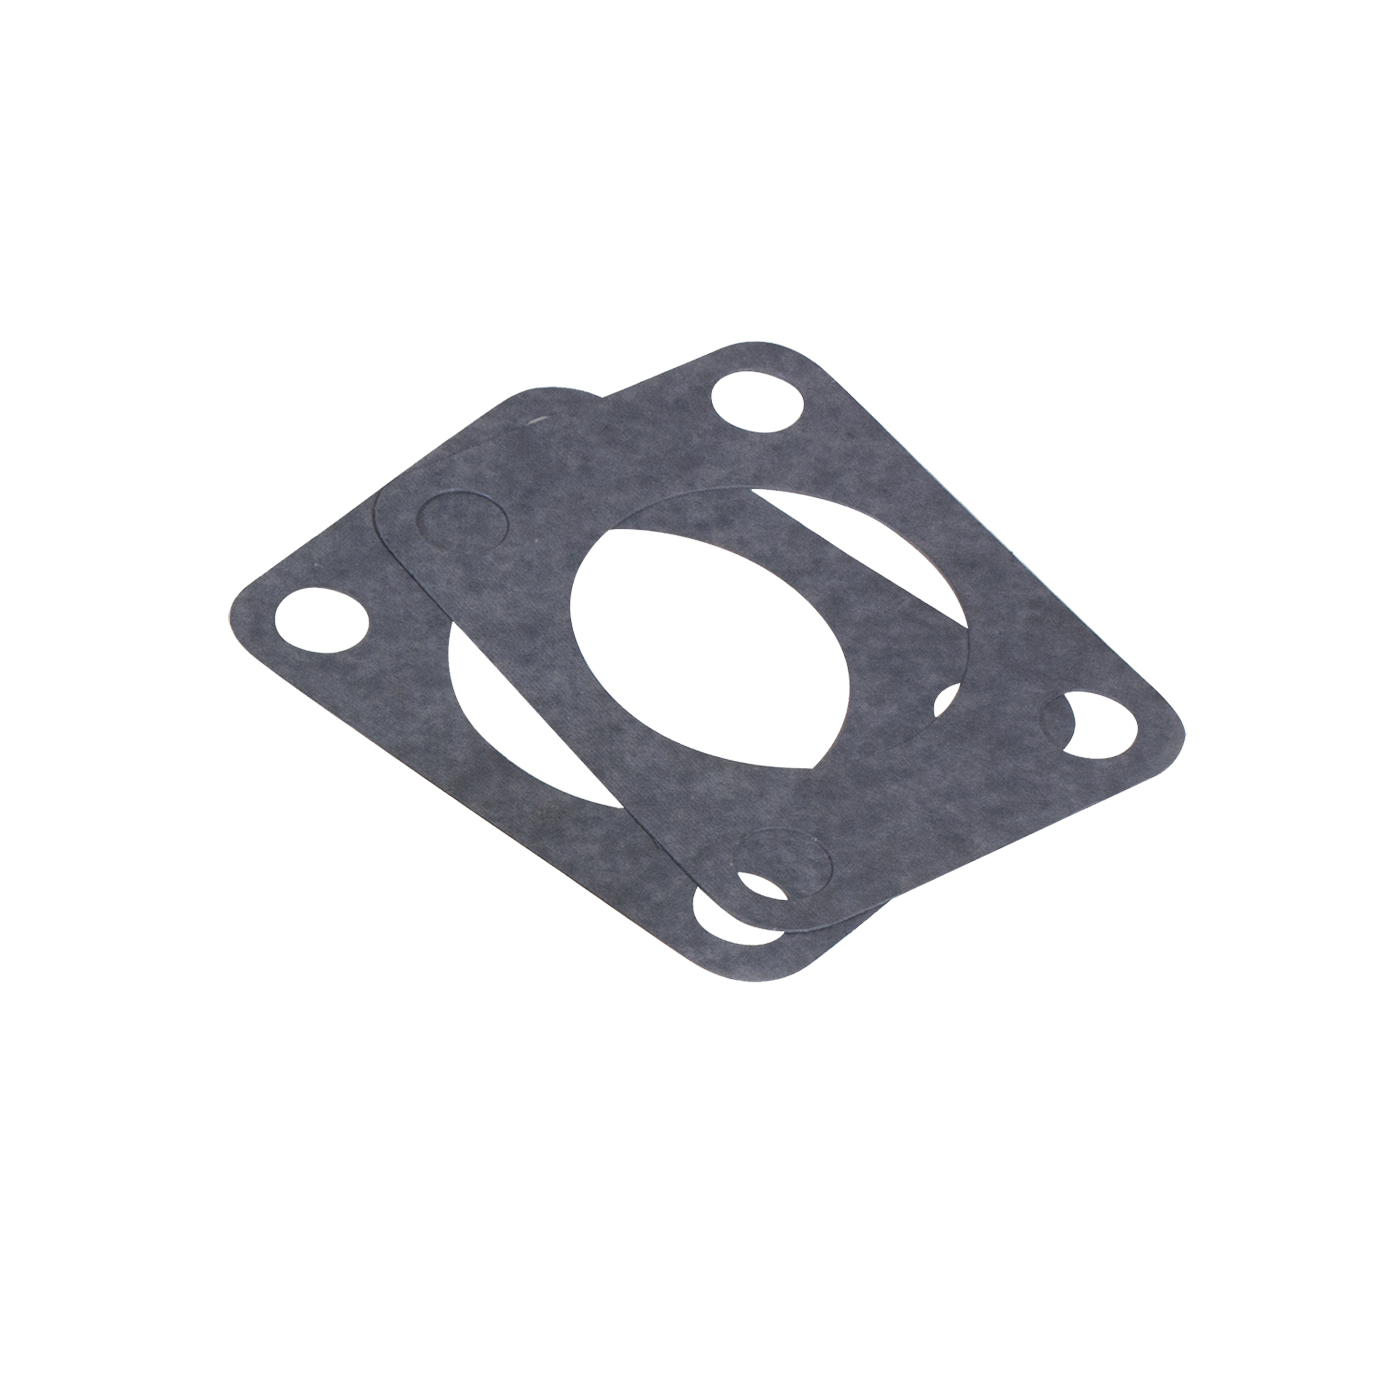 YP KP-005 - Replacement king-pin cap gasket for Dana 60